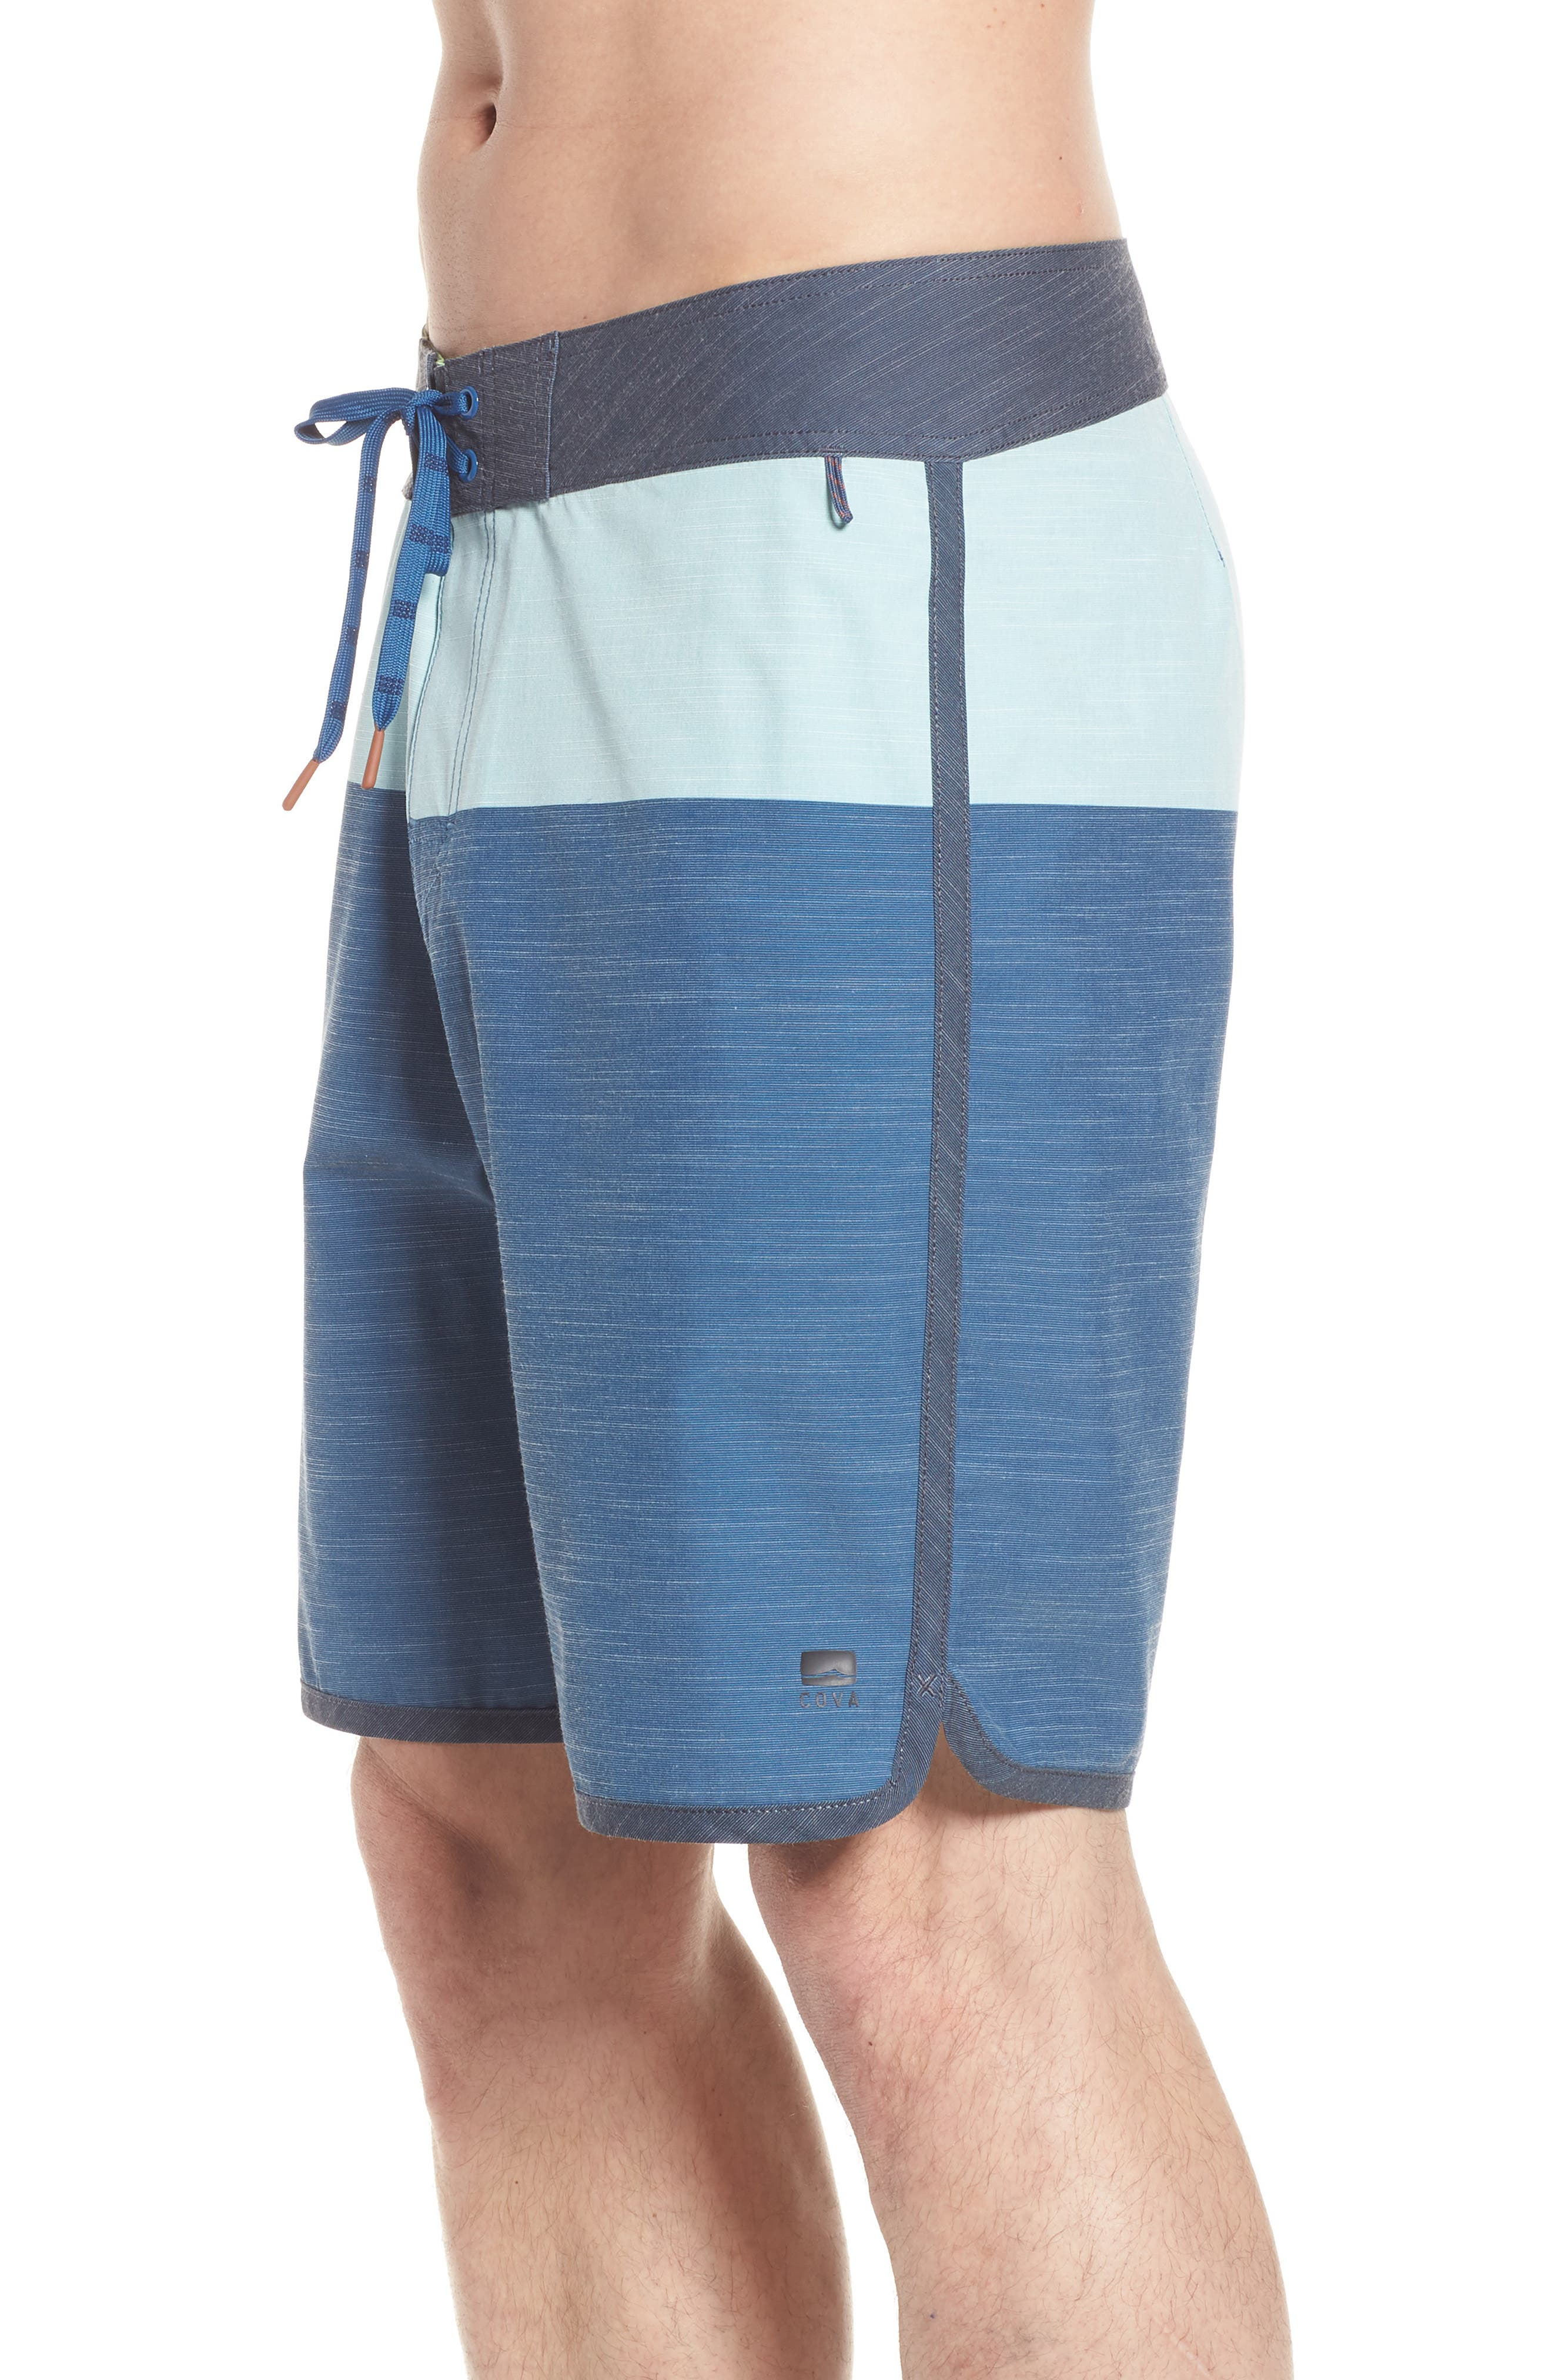 Beachcomber Board Shorts,                             Alternate thumbnail 3, color,                             Ocean Blue